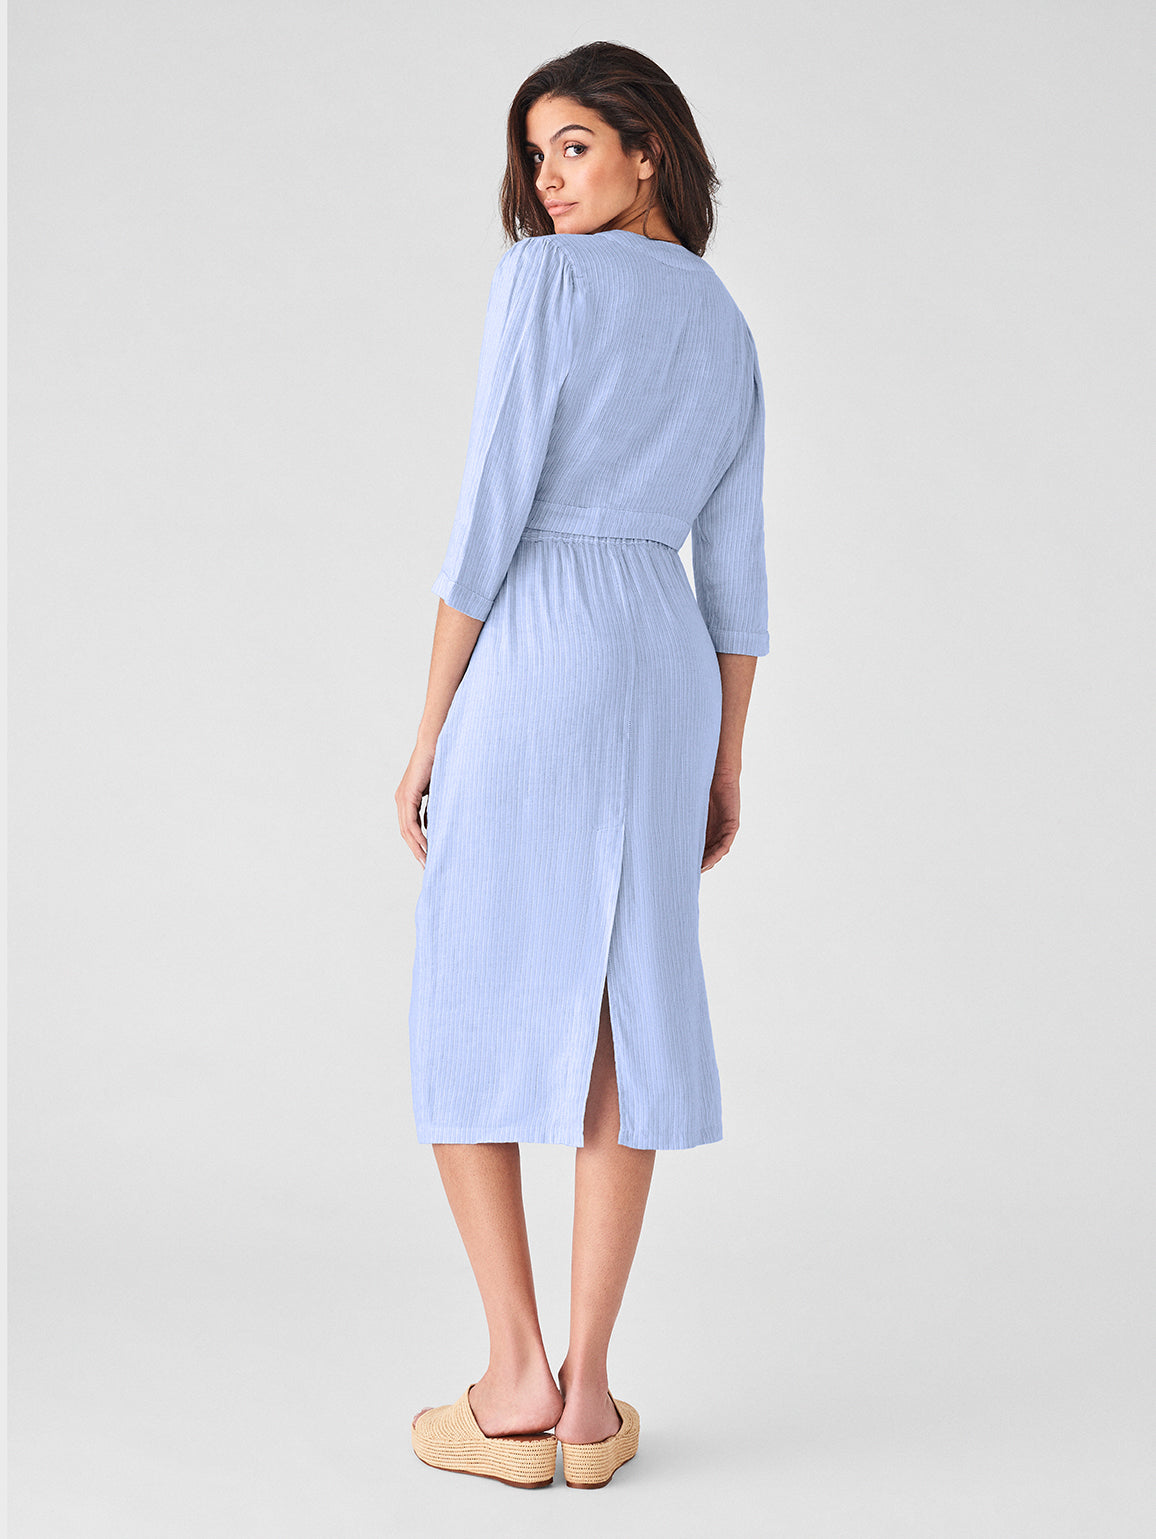 Irving Place Top | Blue Stripe